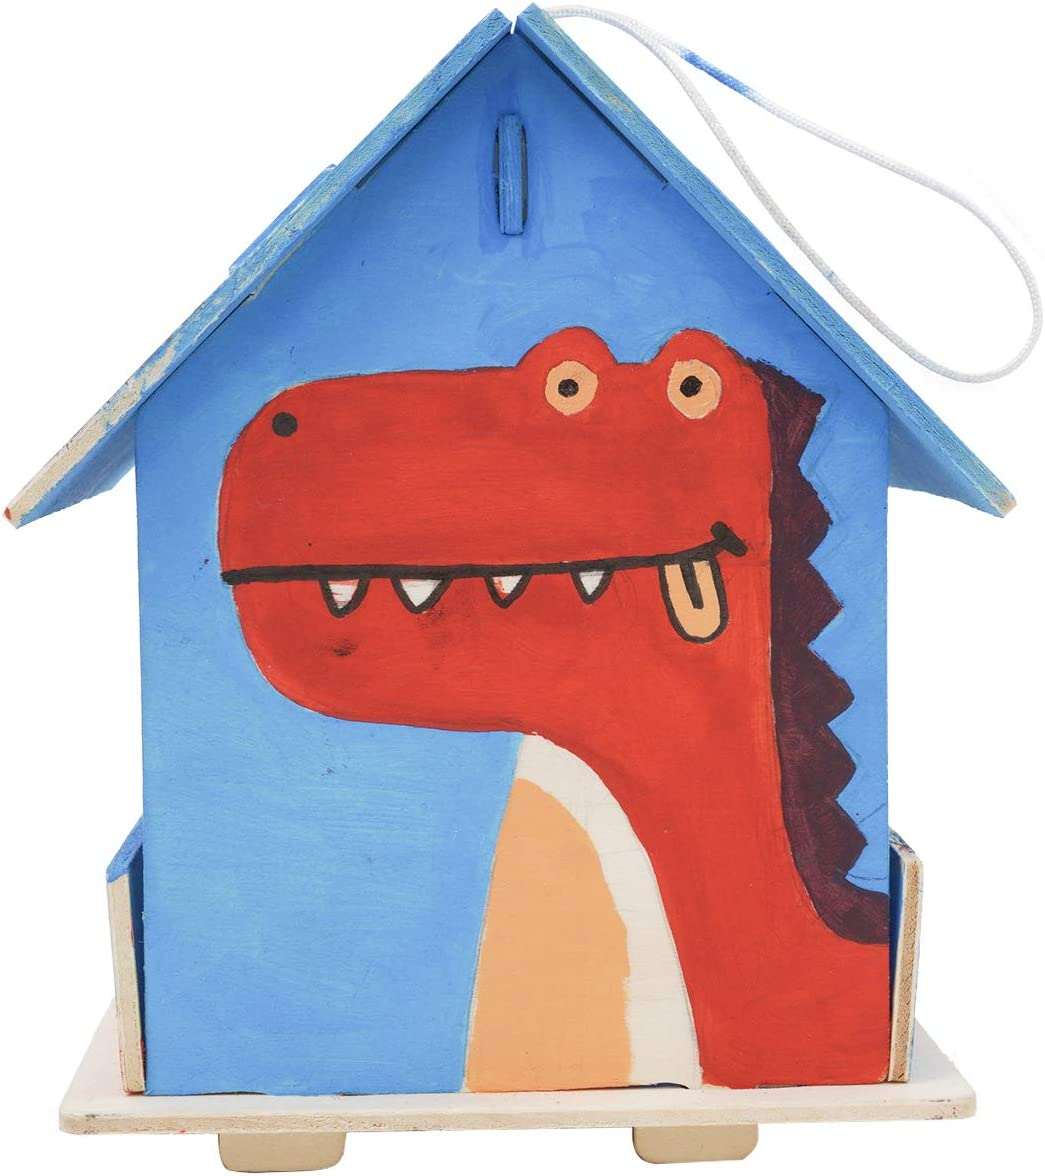 ROBOTIME Wooden Bird House Kits for Painting 3D Wooden Puzzle Grown-Up Toys for Boys and Girls Scout Activity